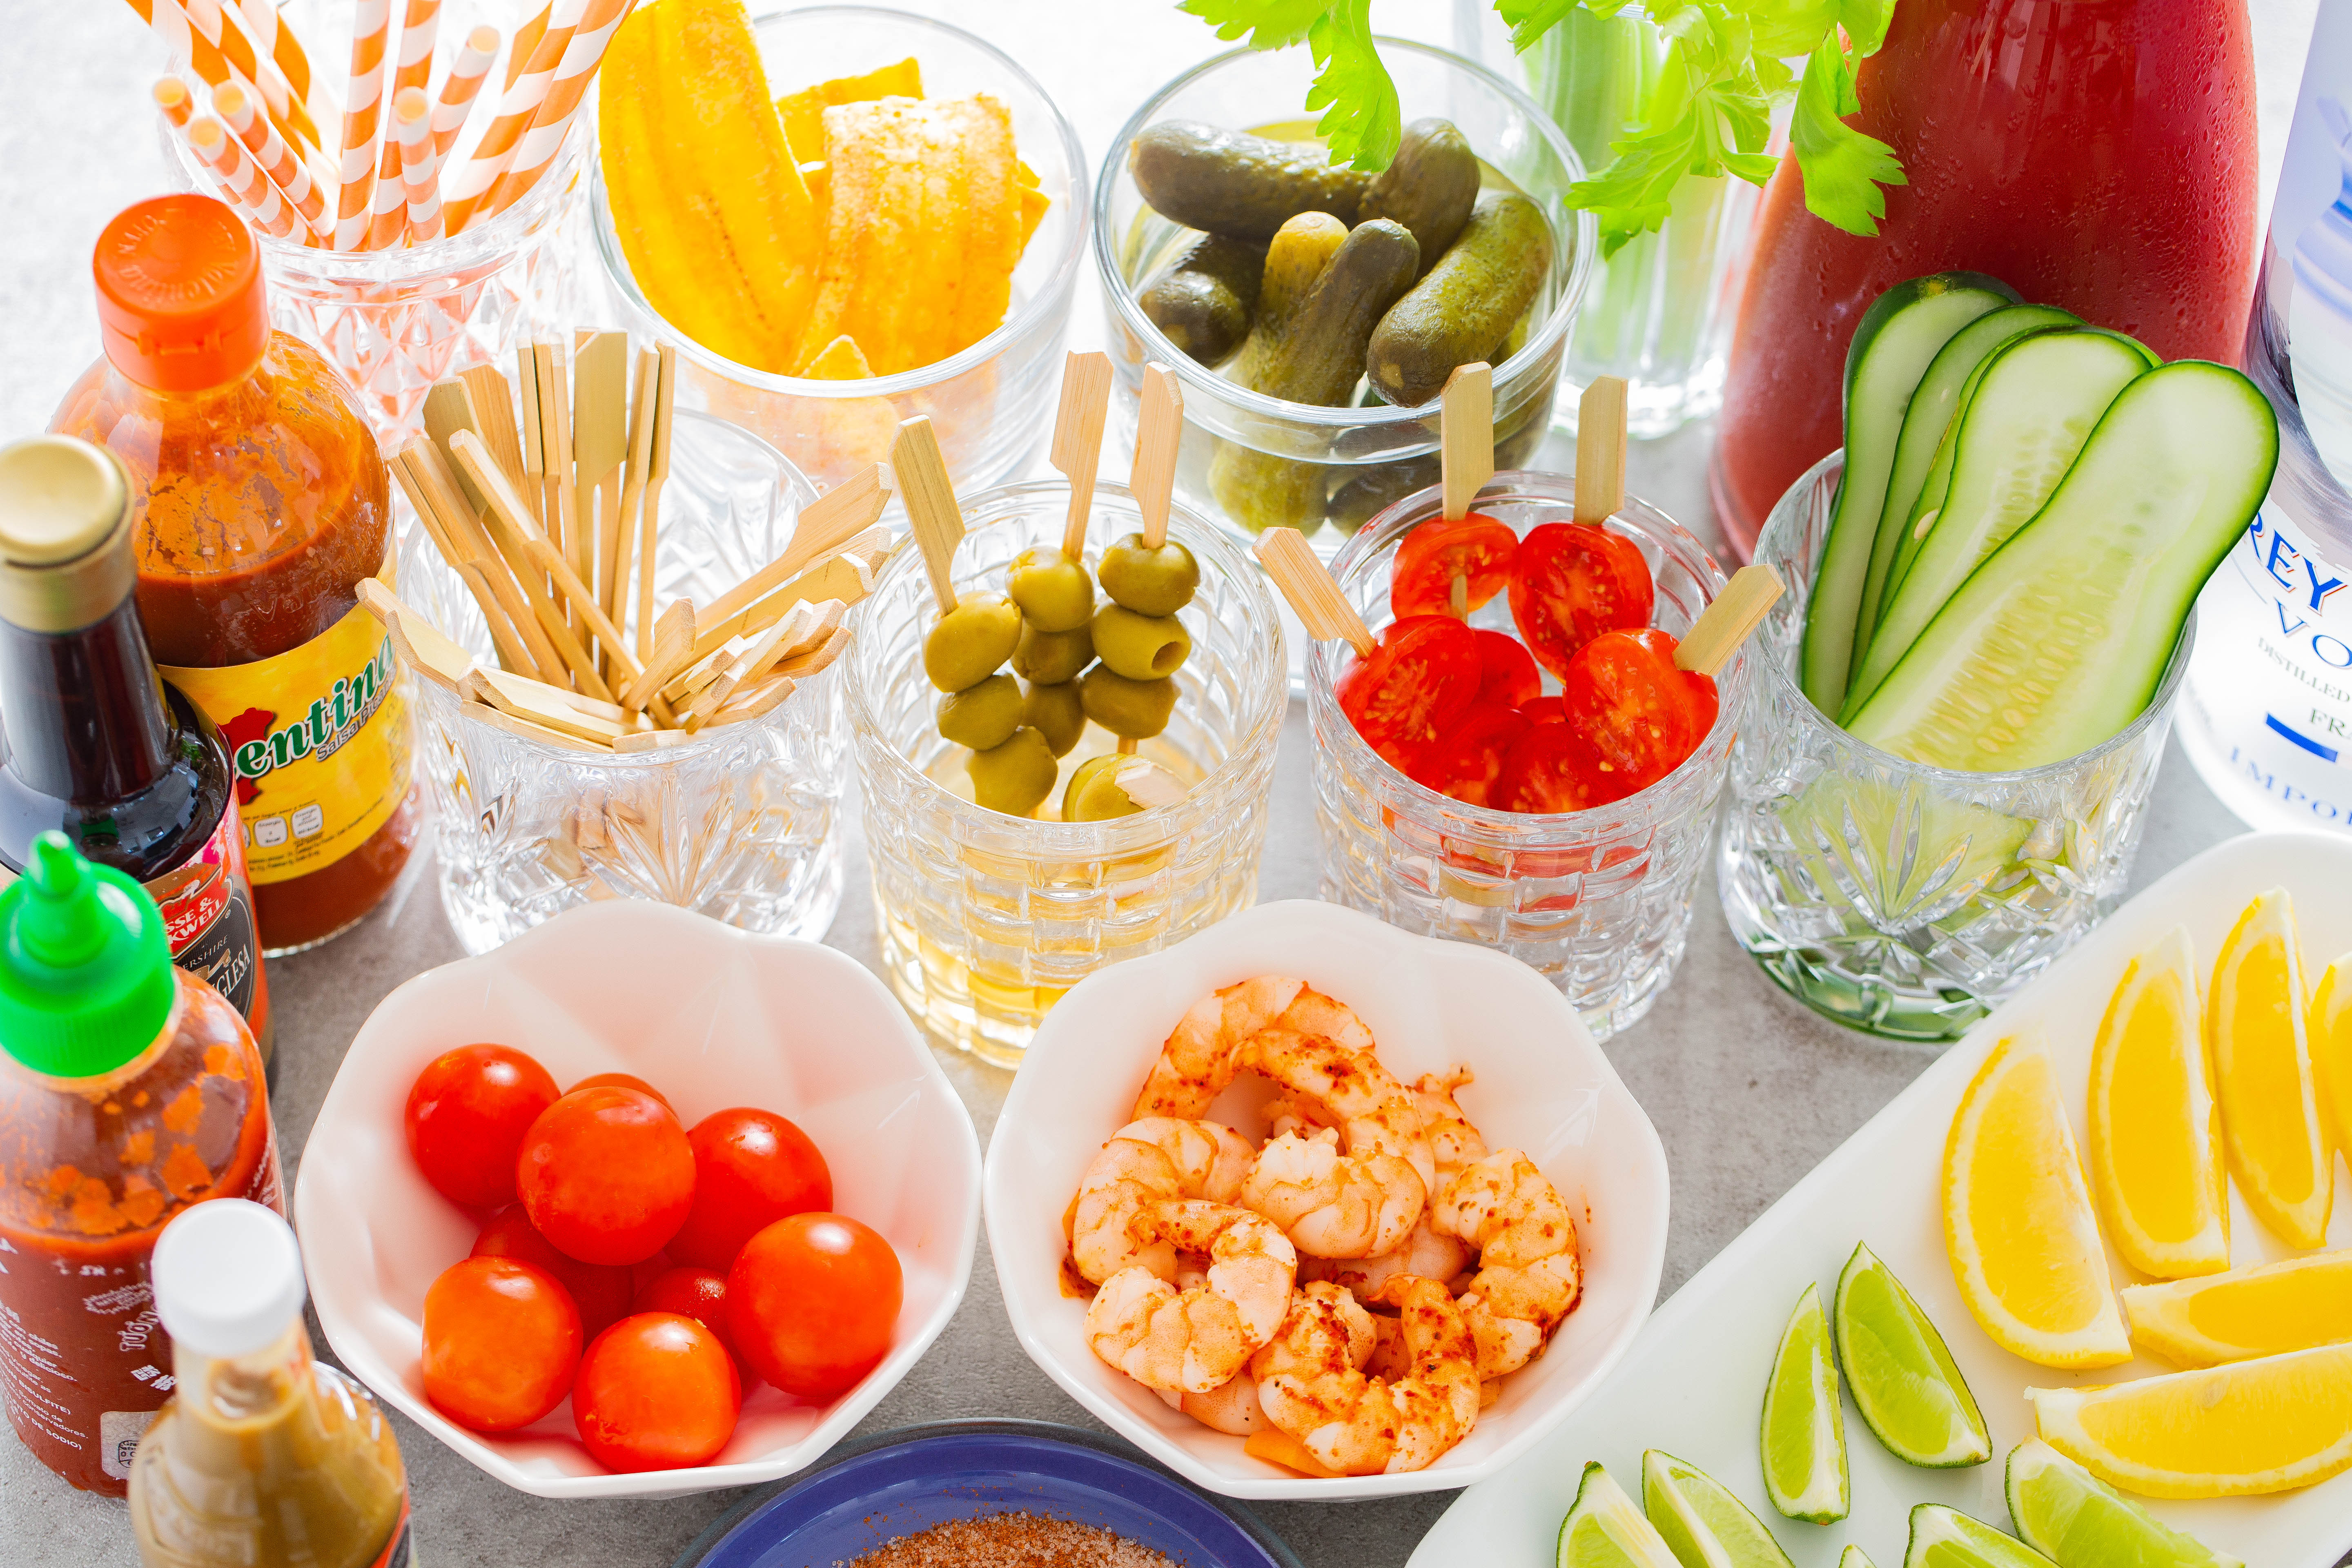 Straws, kosher pickles, celery, Bloody Mary mix, dill pickles, cherry tomatoes, olives and shrimp played out in clear bowls to create a Bloody Mary Bar.